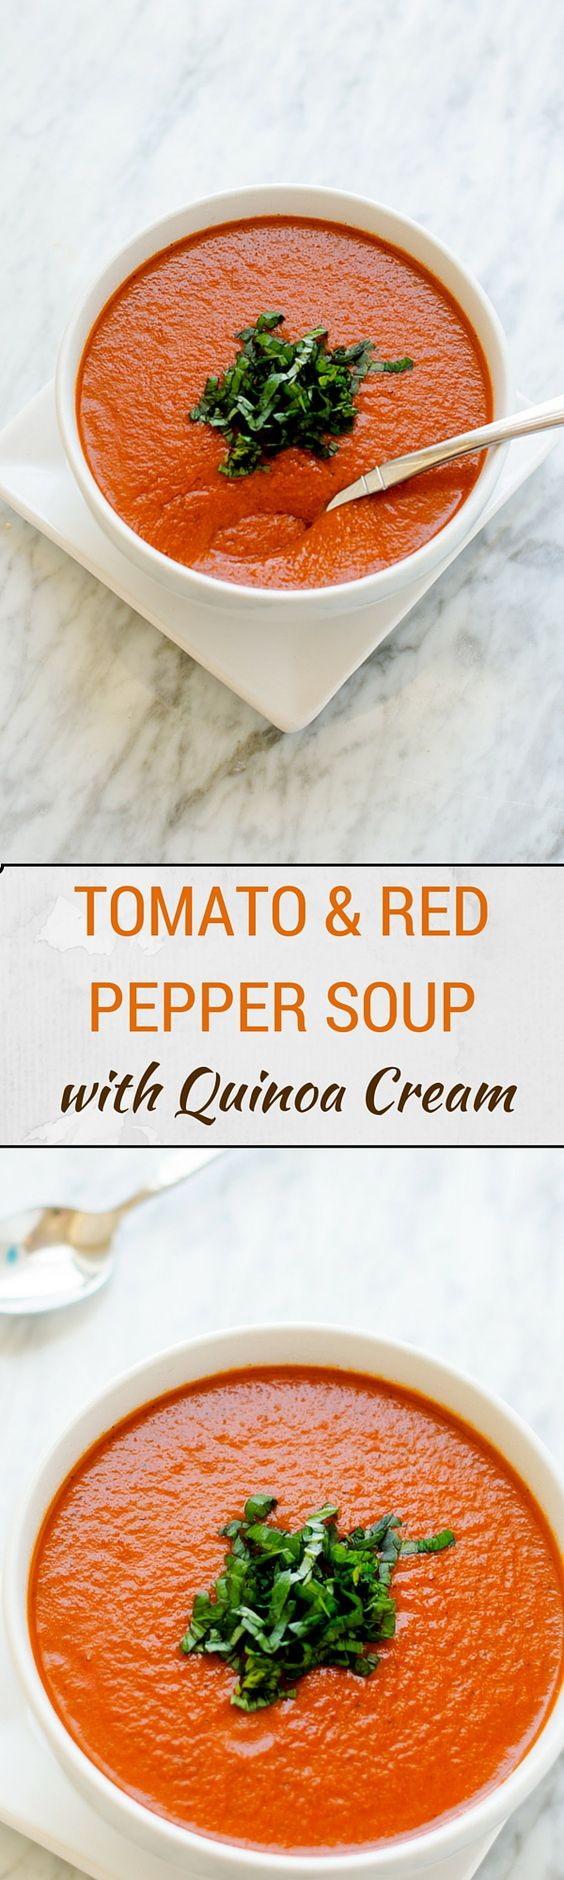 Roasted Red Pepper And Tomato Soup Easy Healthy Wendy Polisi Recipe Healthy Soup Recipes Stuffed Peppers Best Soup Recipes